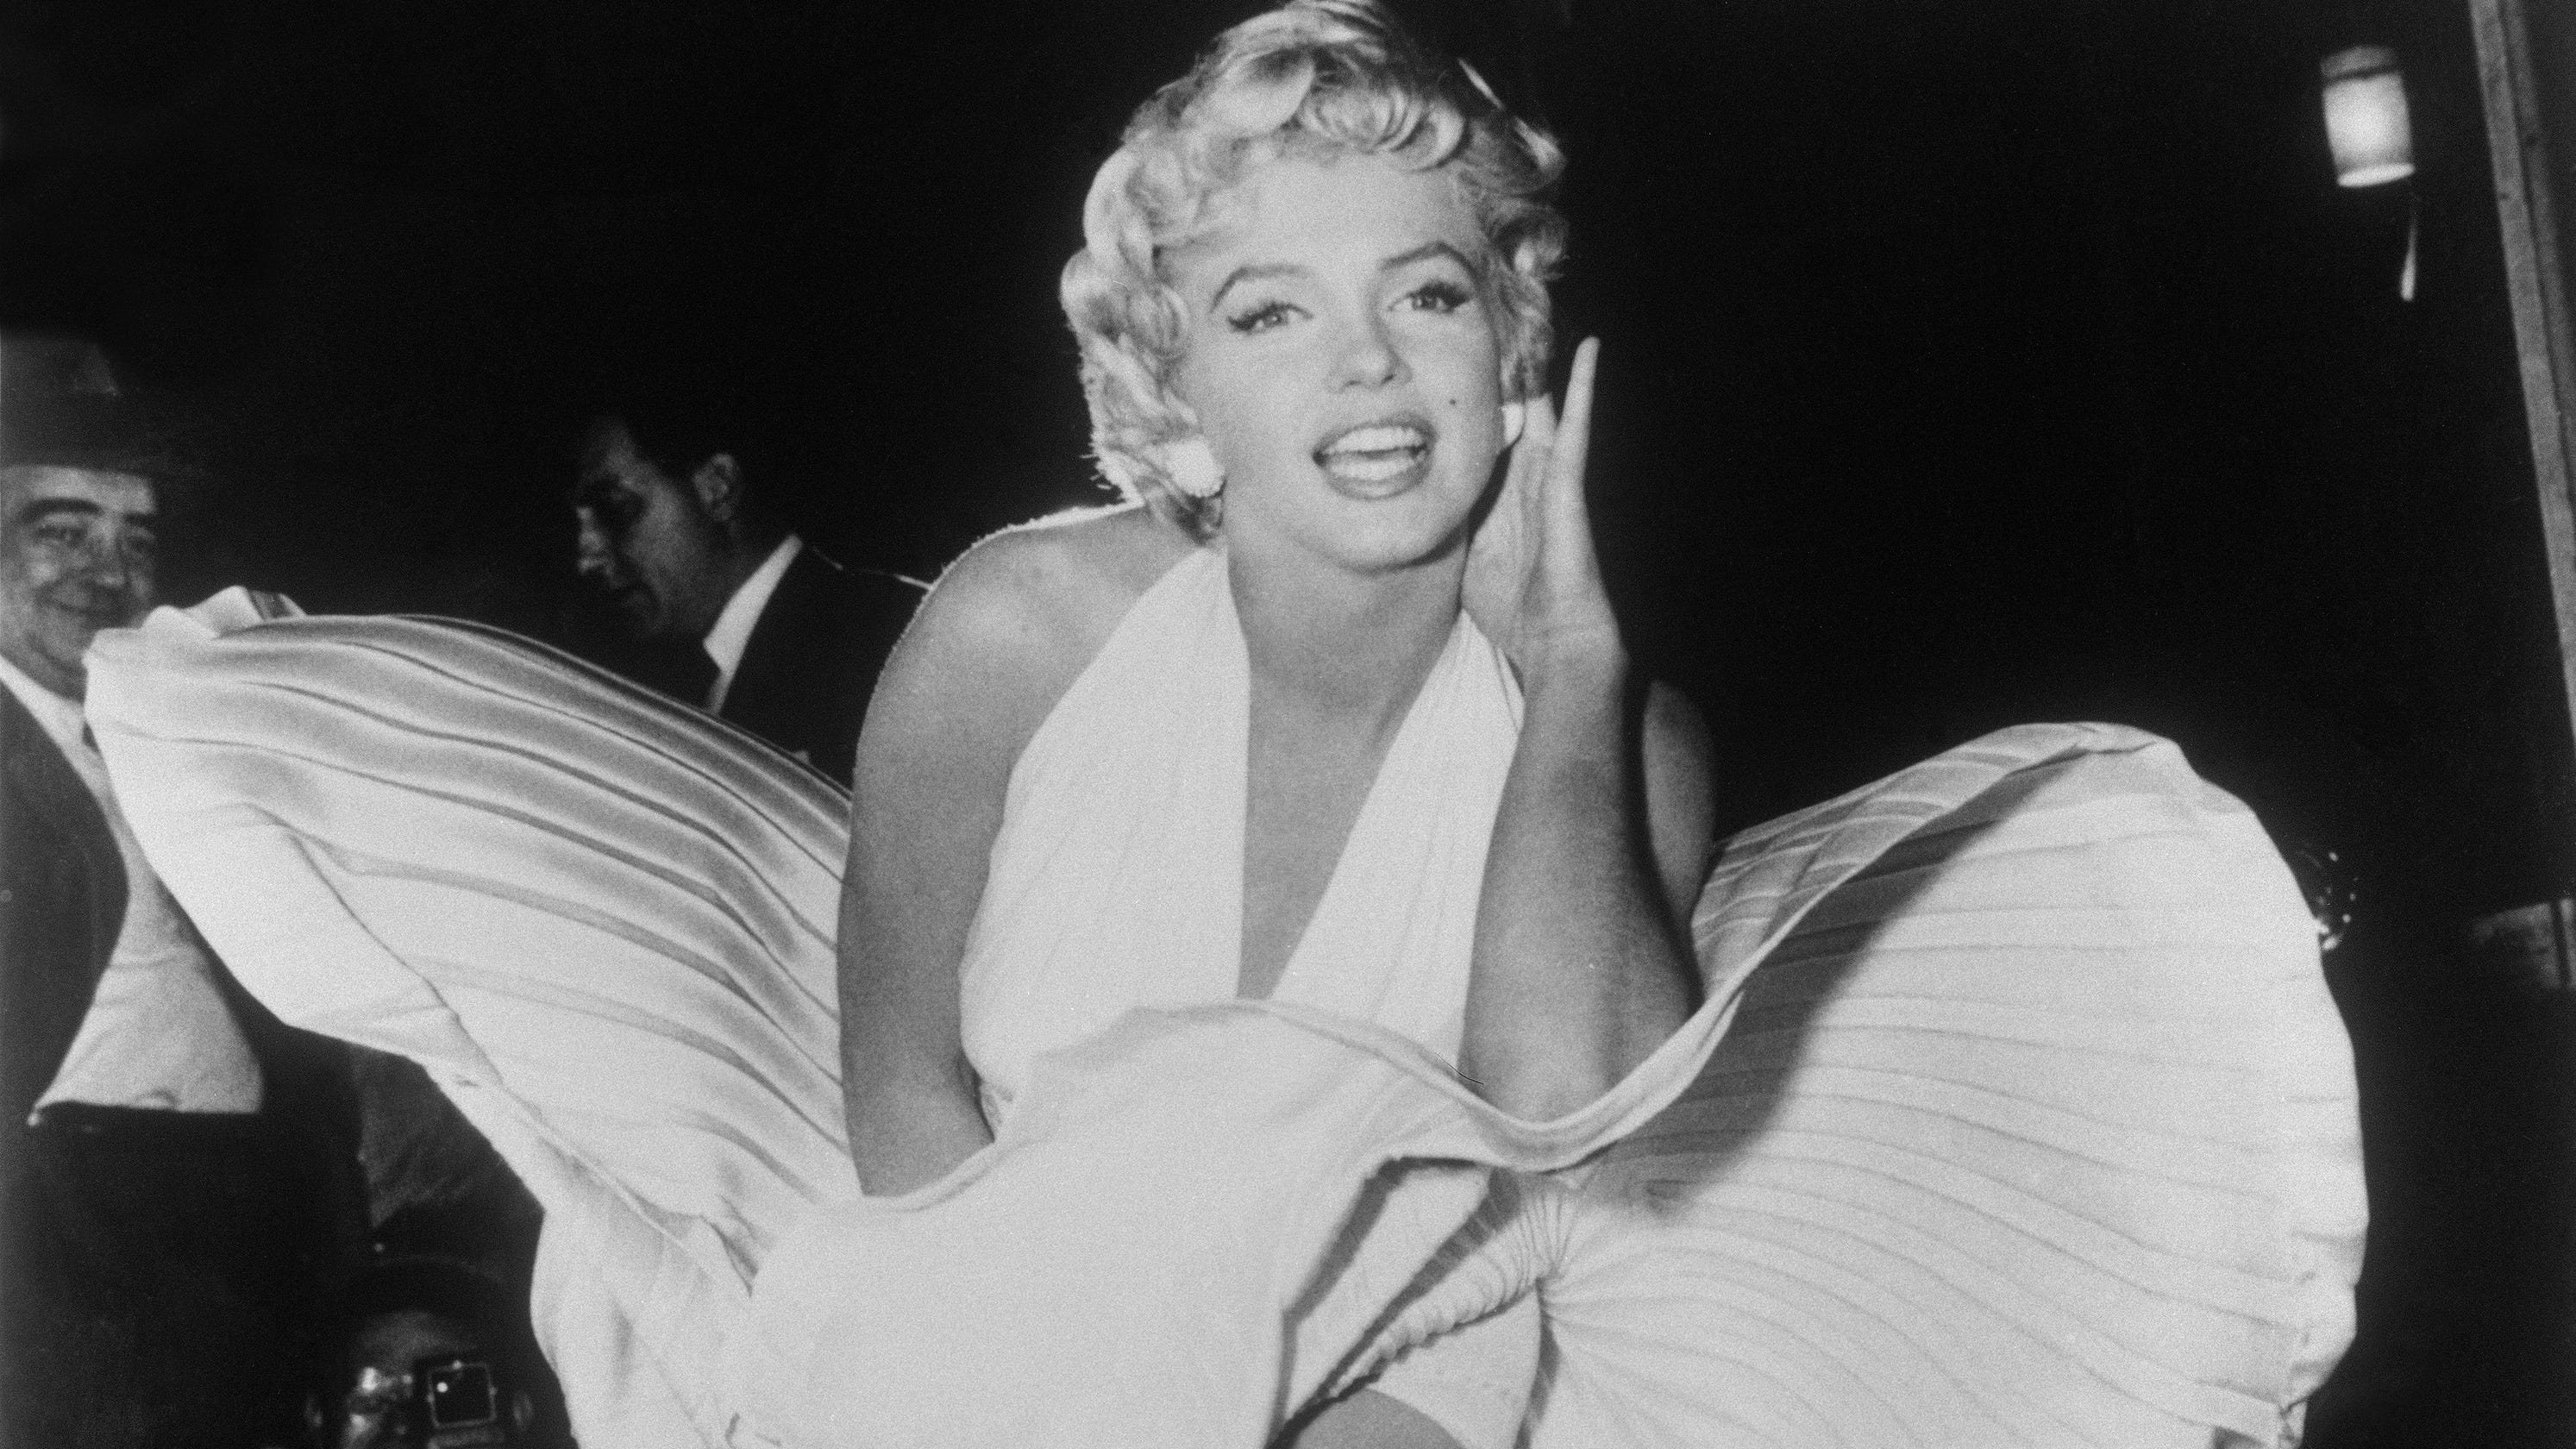 from Yahir nude images of marilyn monroe